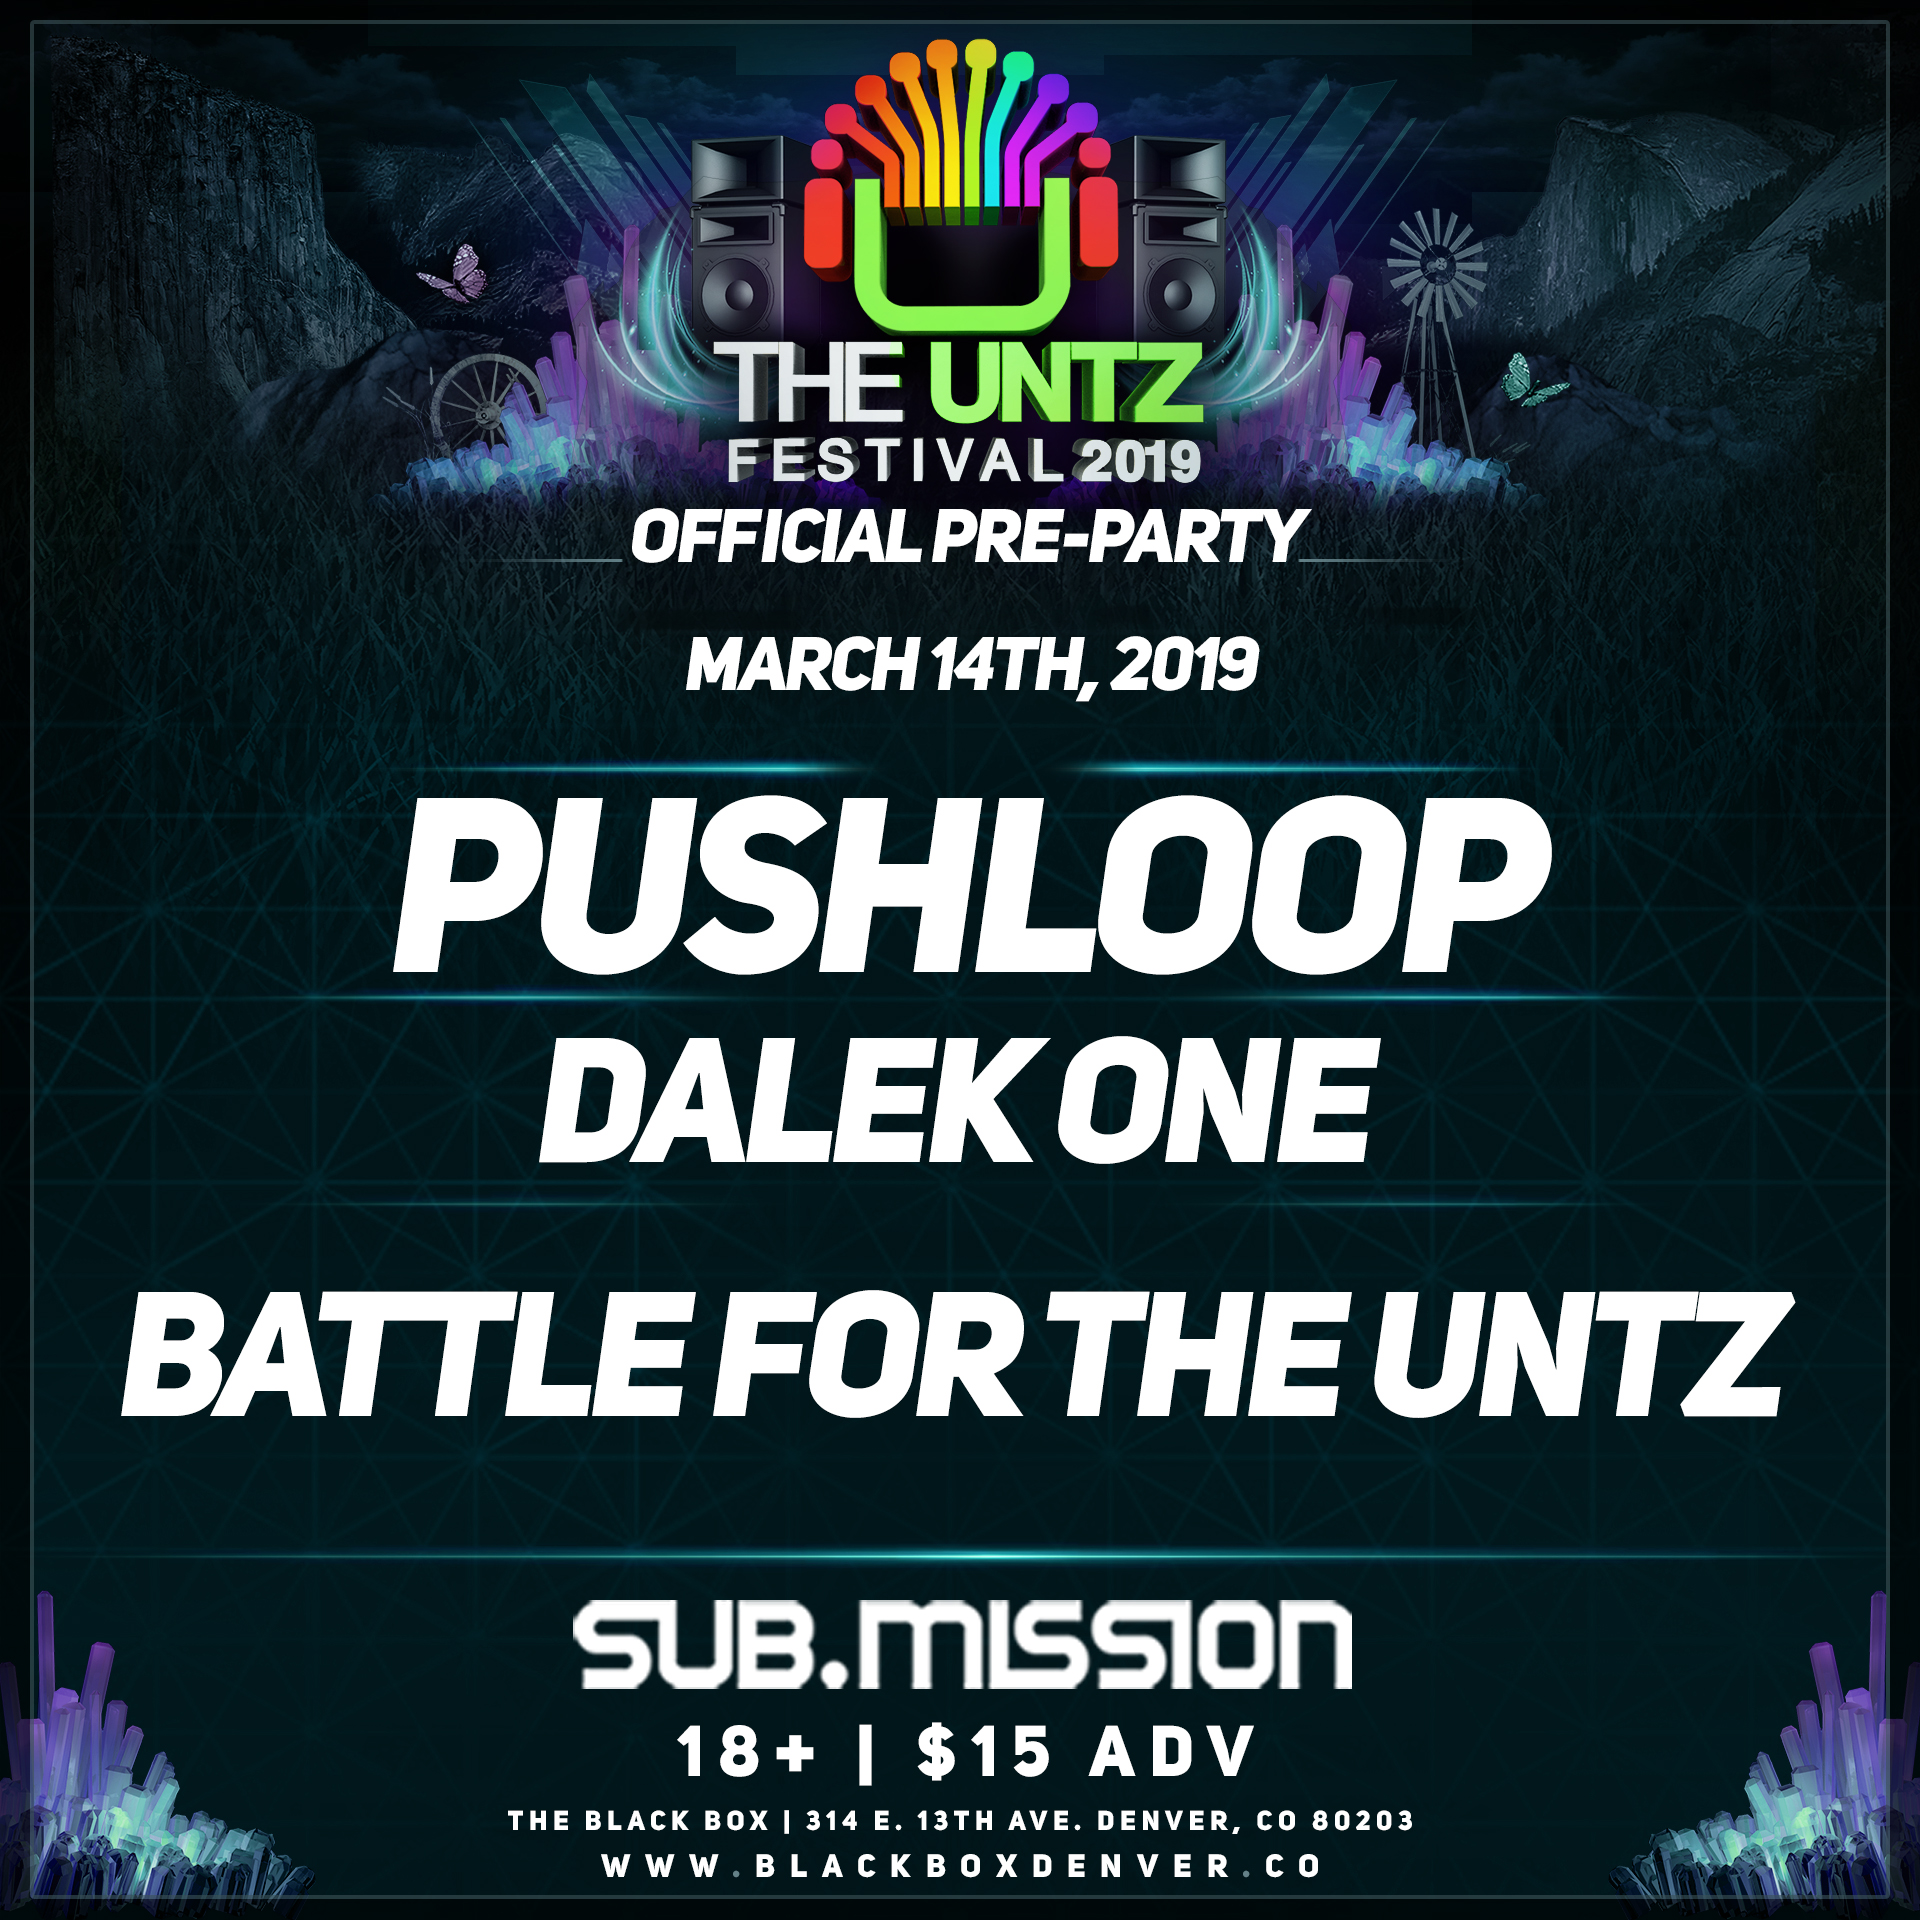 The Untz Festival Pre-Party Denver March 14